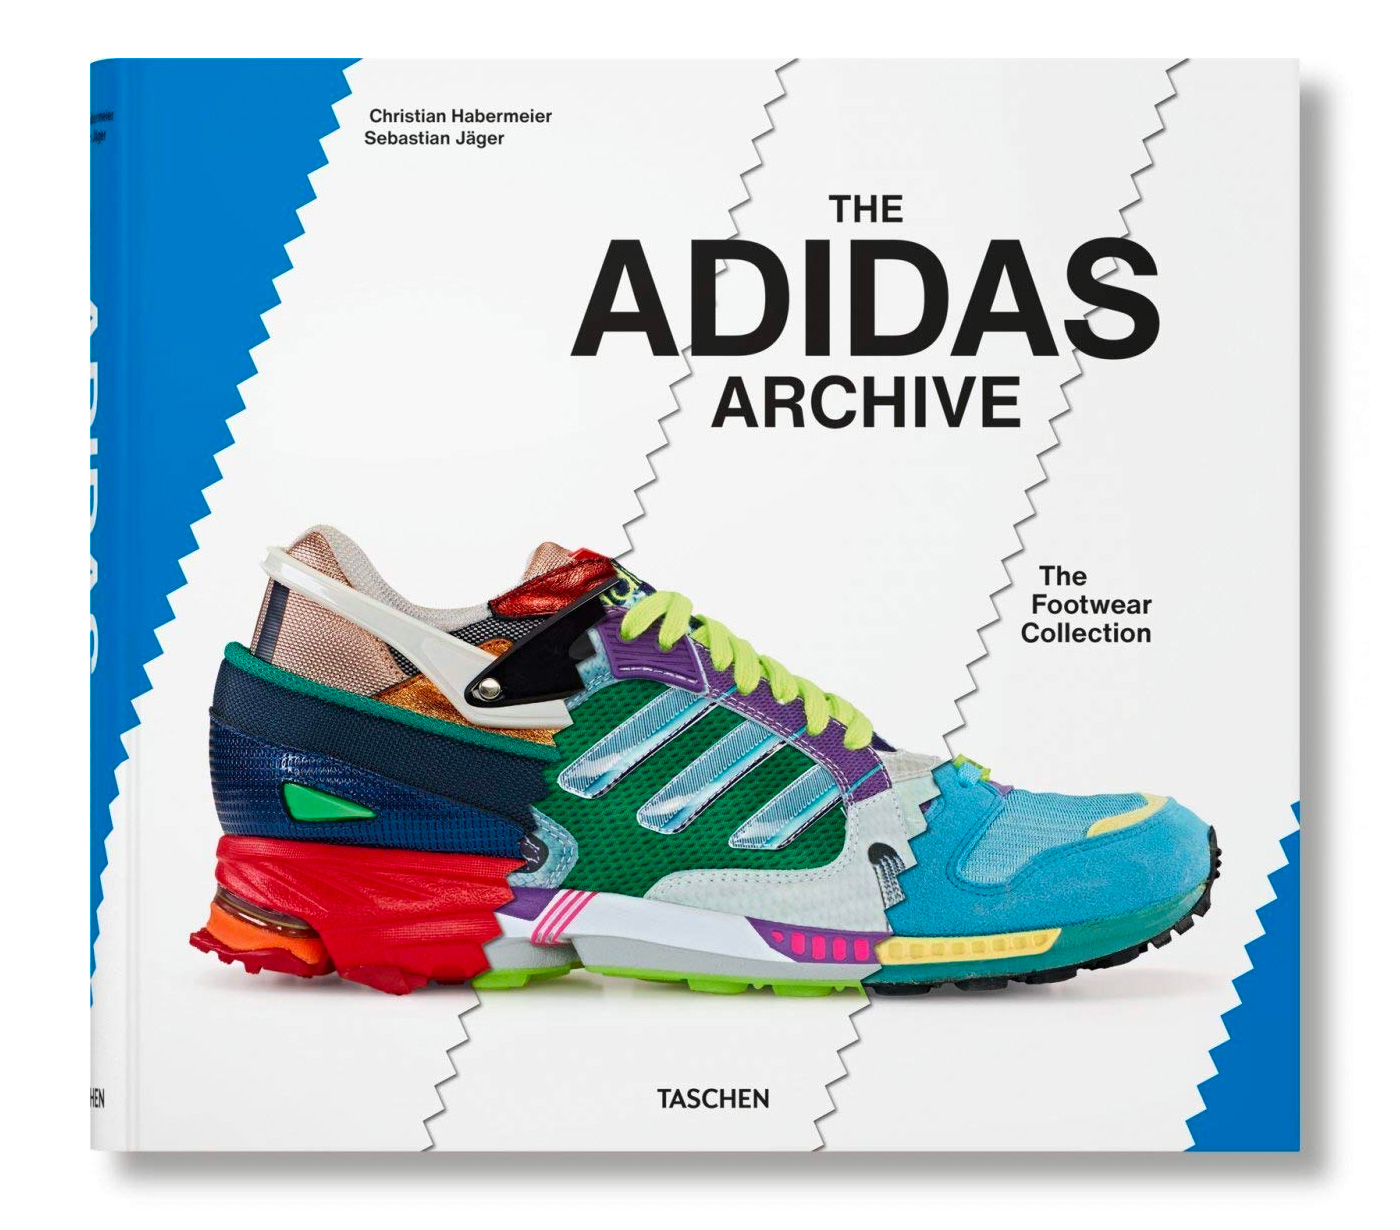 The adidas Archive: The Footwear Collection at werd.com